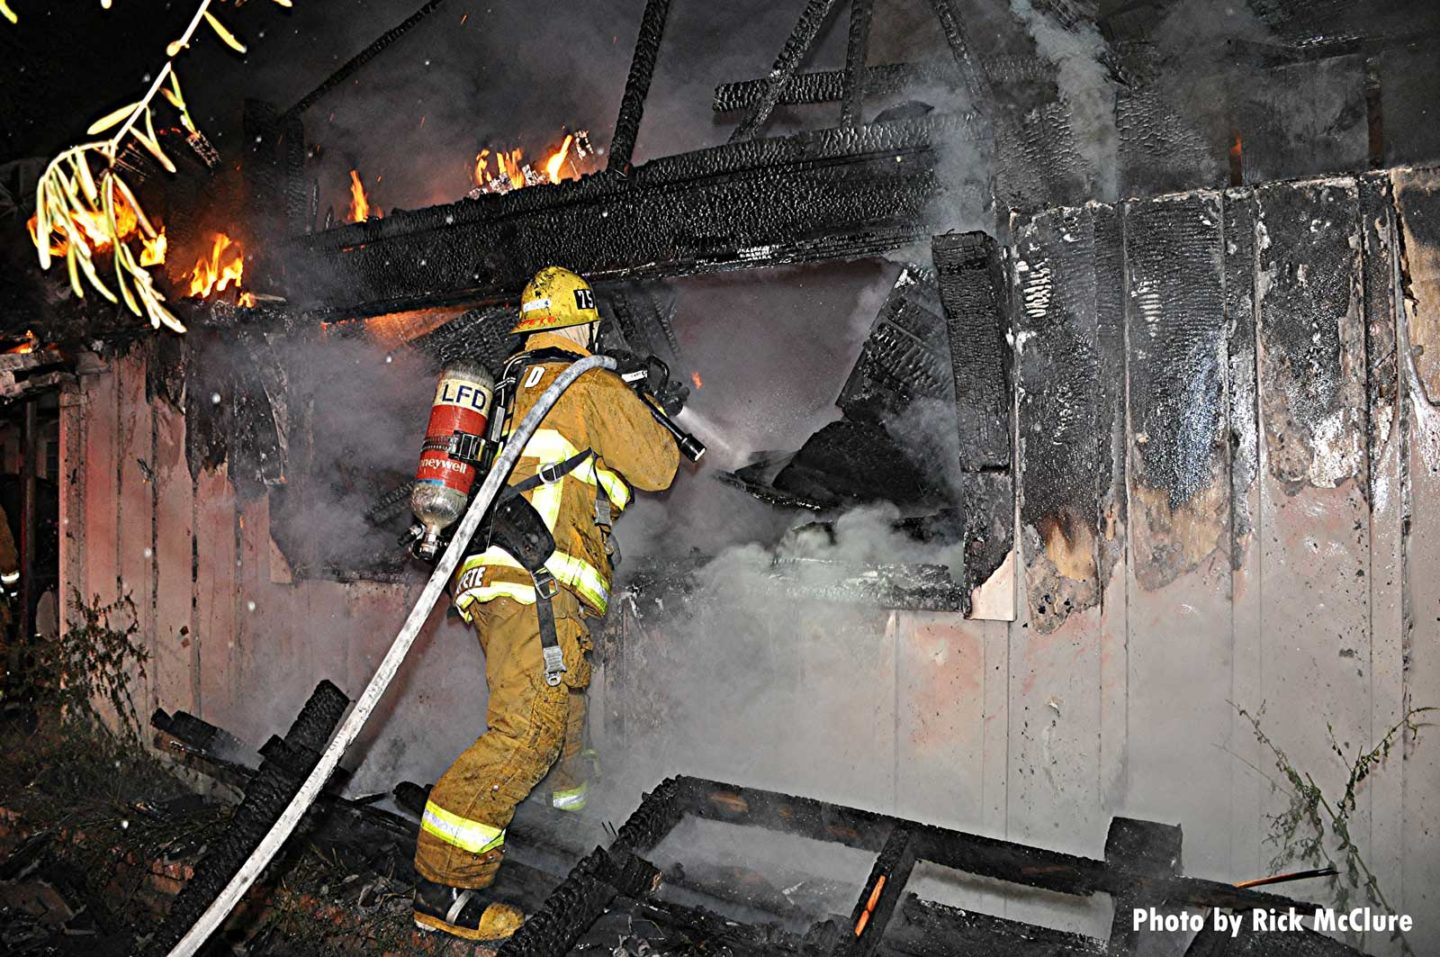 Firefighter directs hose stream through window as fire burns in structure